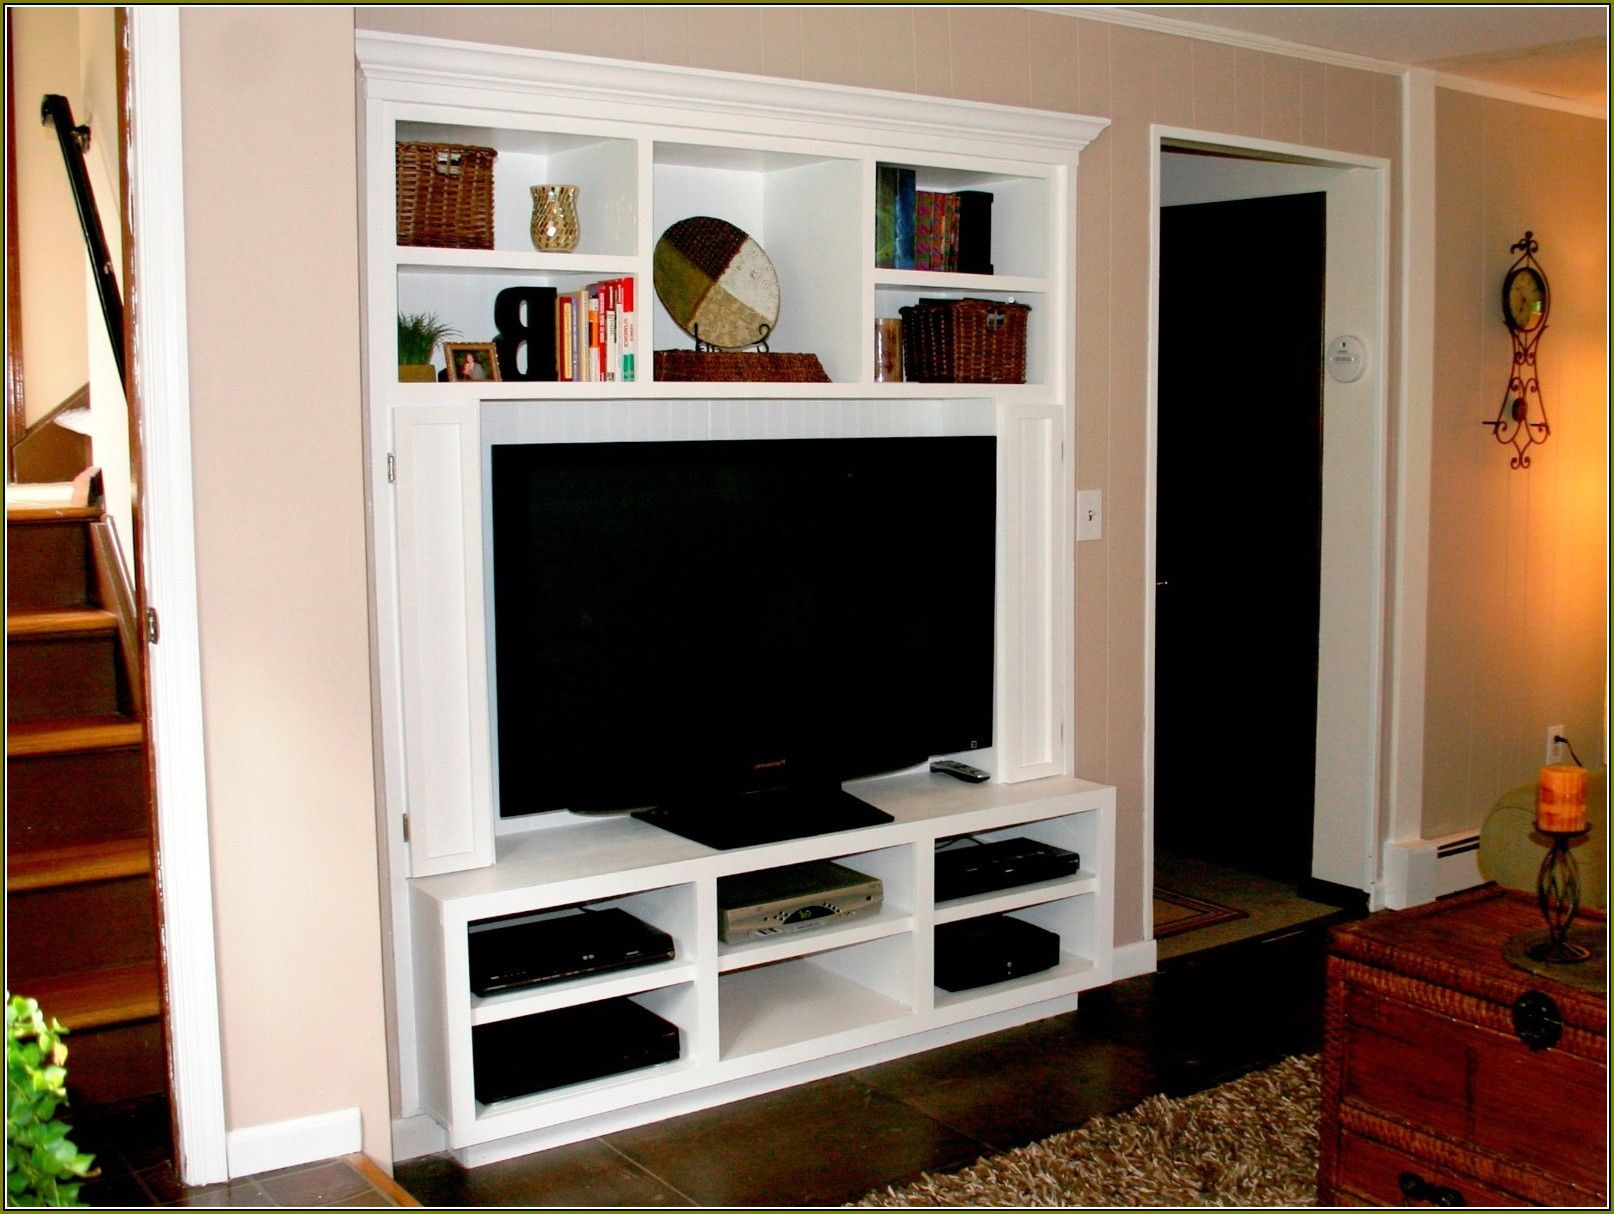 28 Amazing Diy Tv Stand Ideas That You Can Build Right Now Zebaru Build A Closet Entertainment Center Wall Mount Entertainment Center